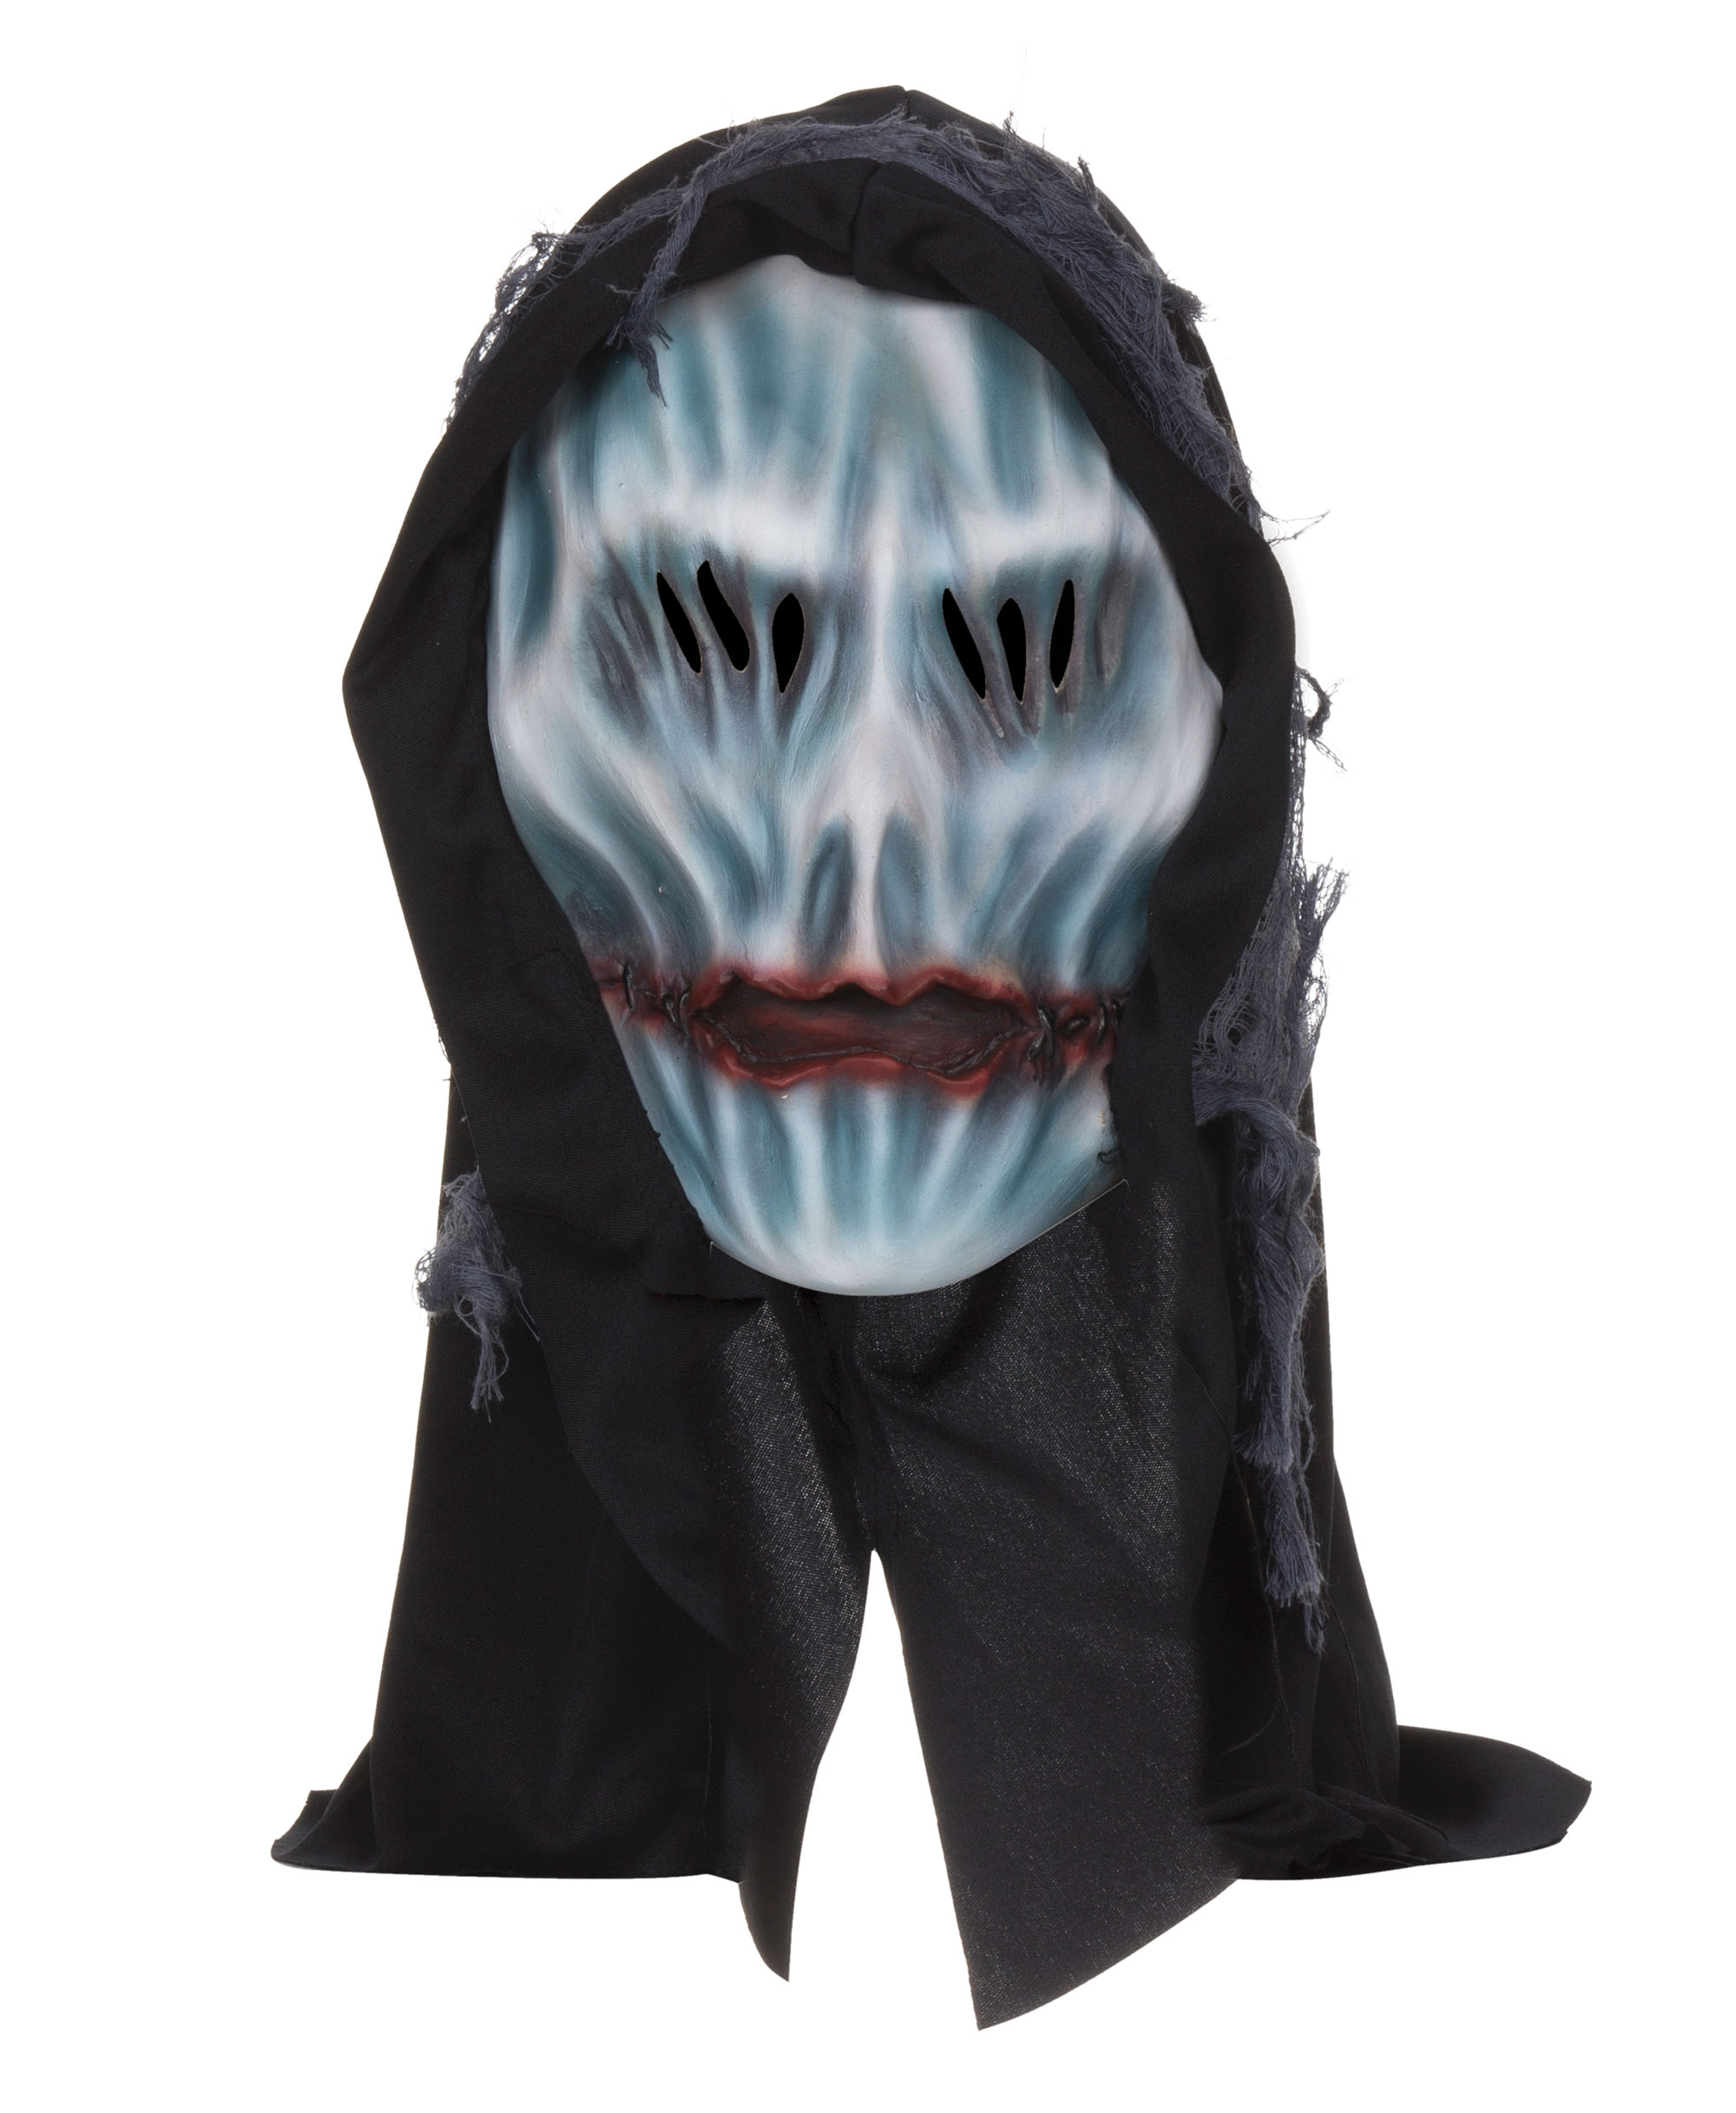 Hooded Ghost Mask Rubber